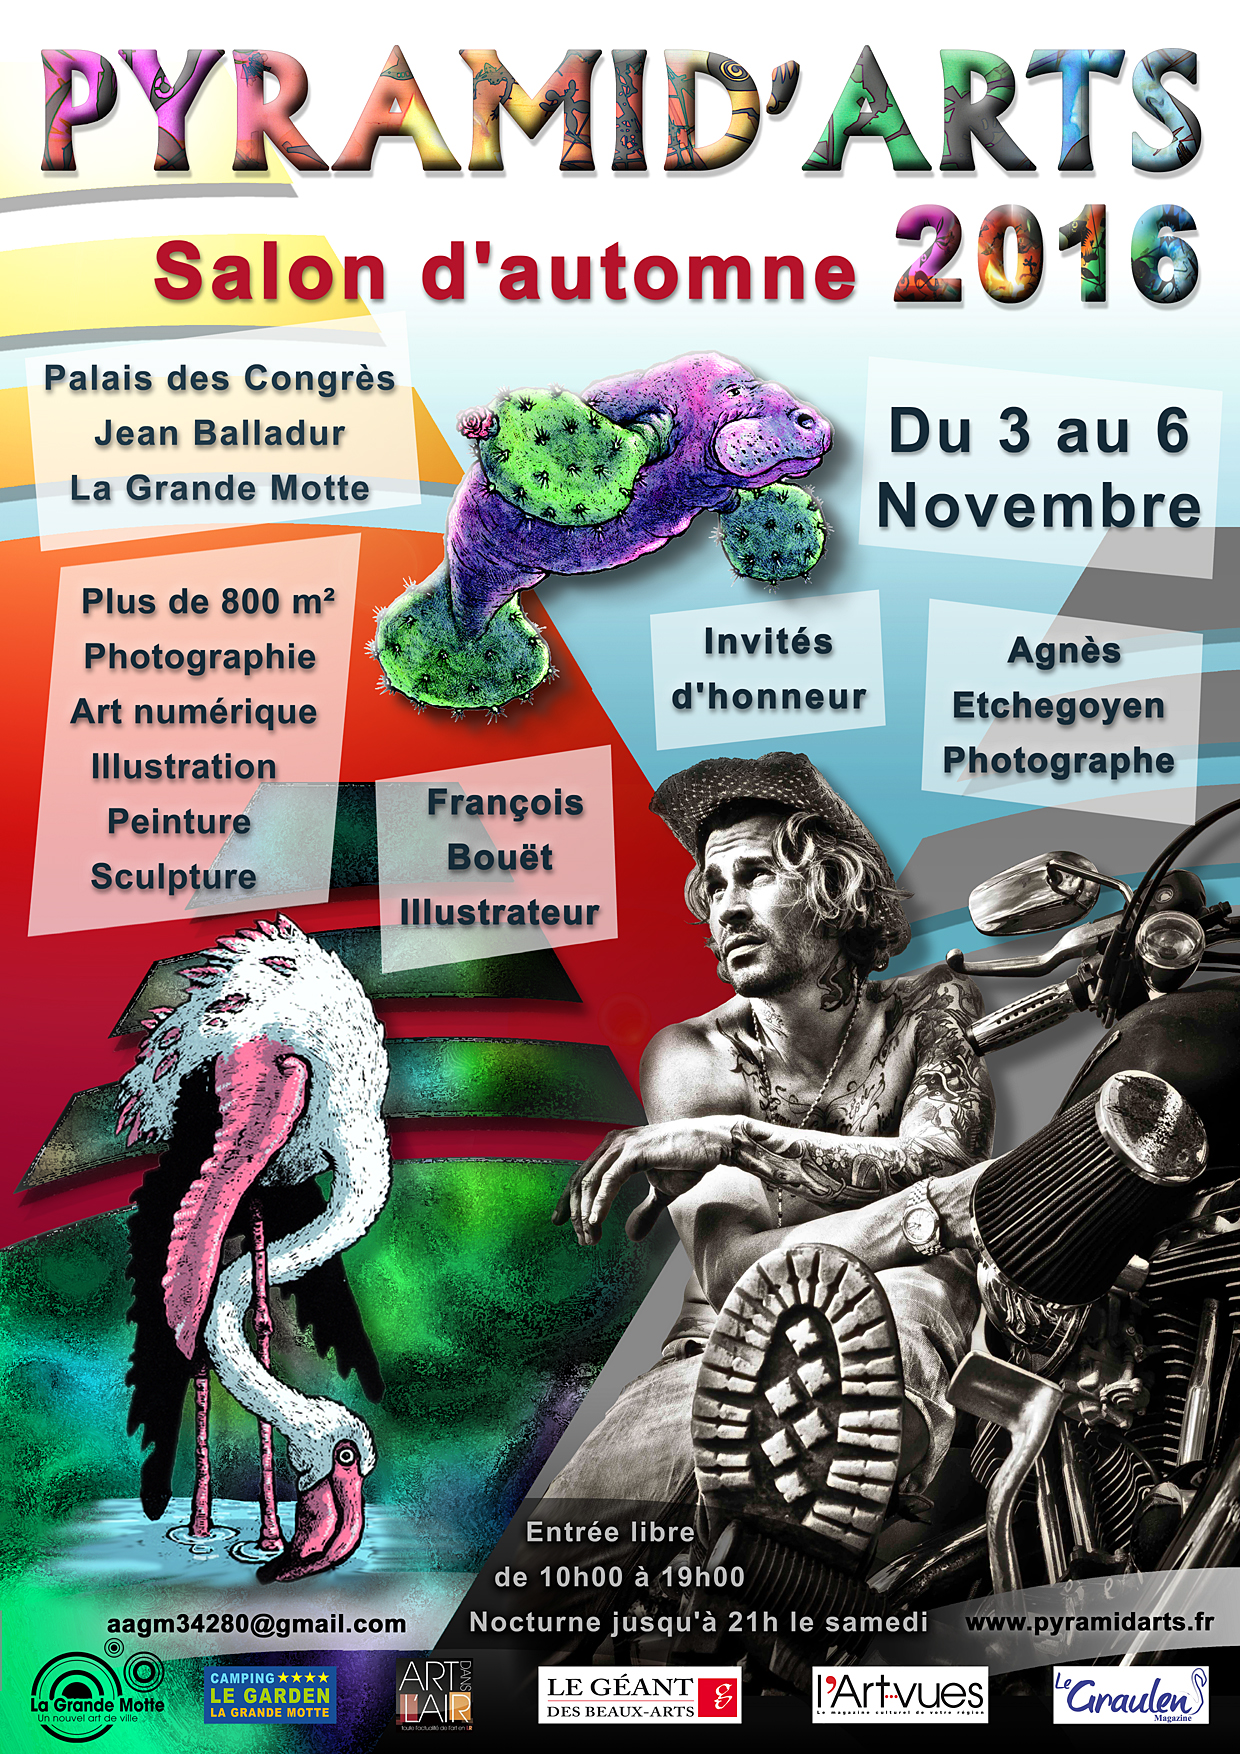 Salon d'automne Pyramid'Arts 2016